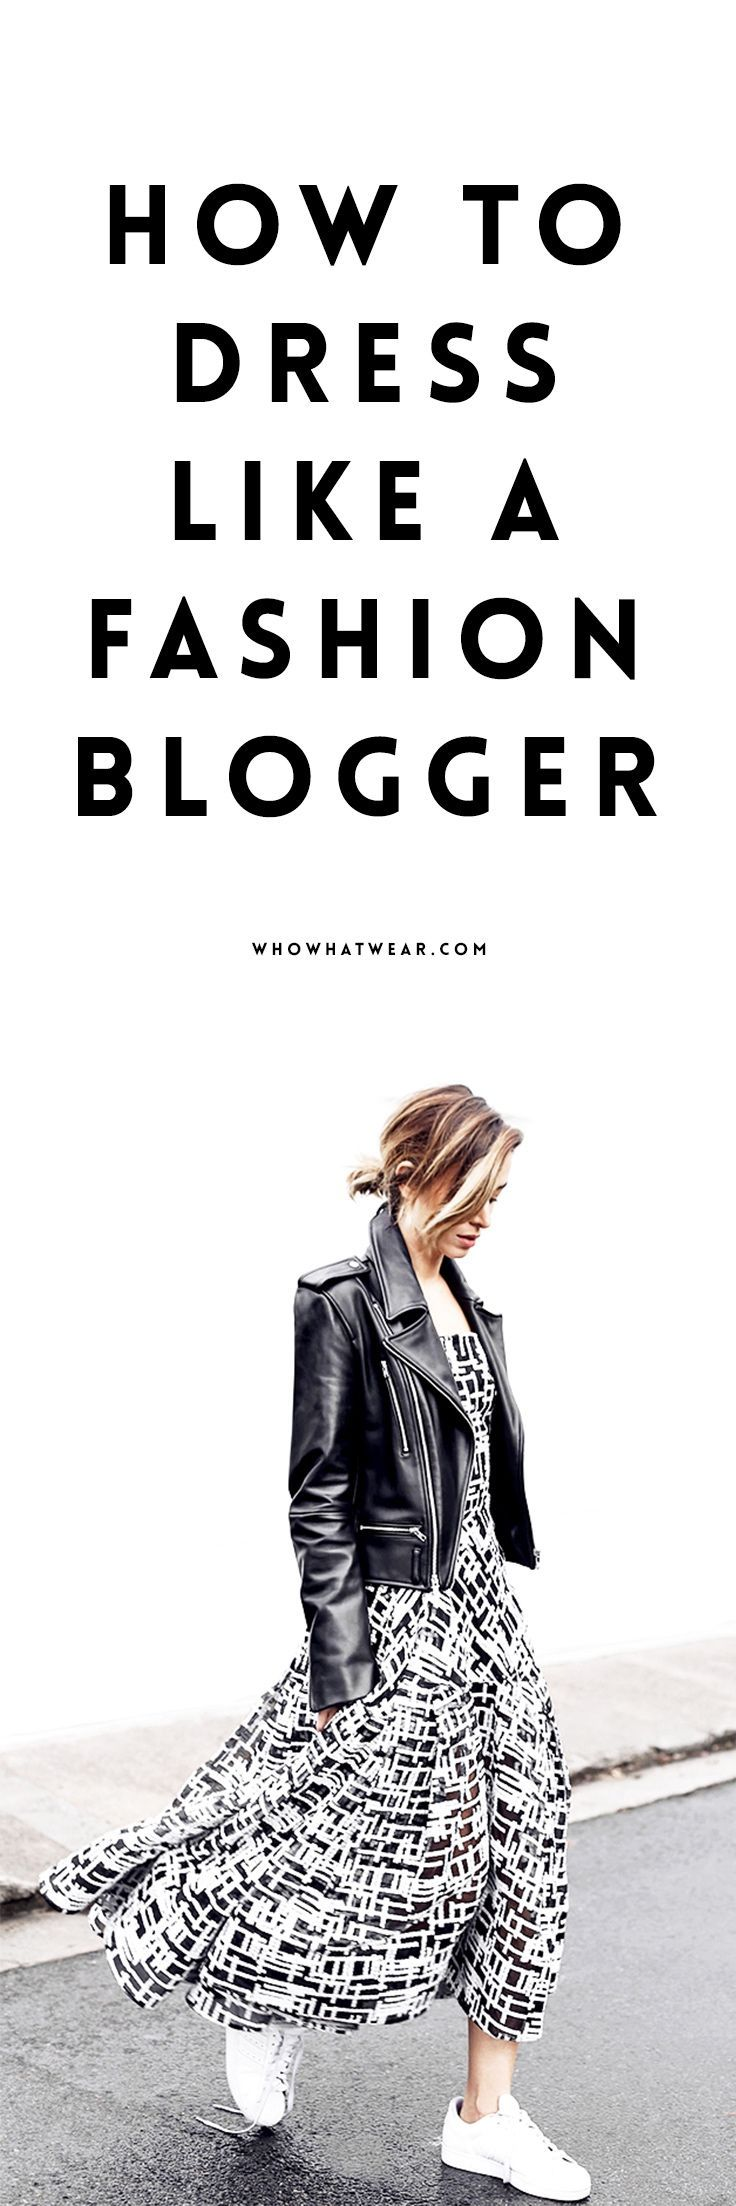 Budget-friendly blogger style